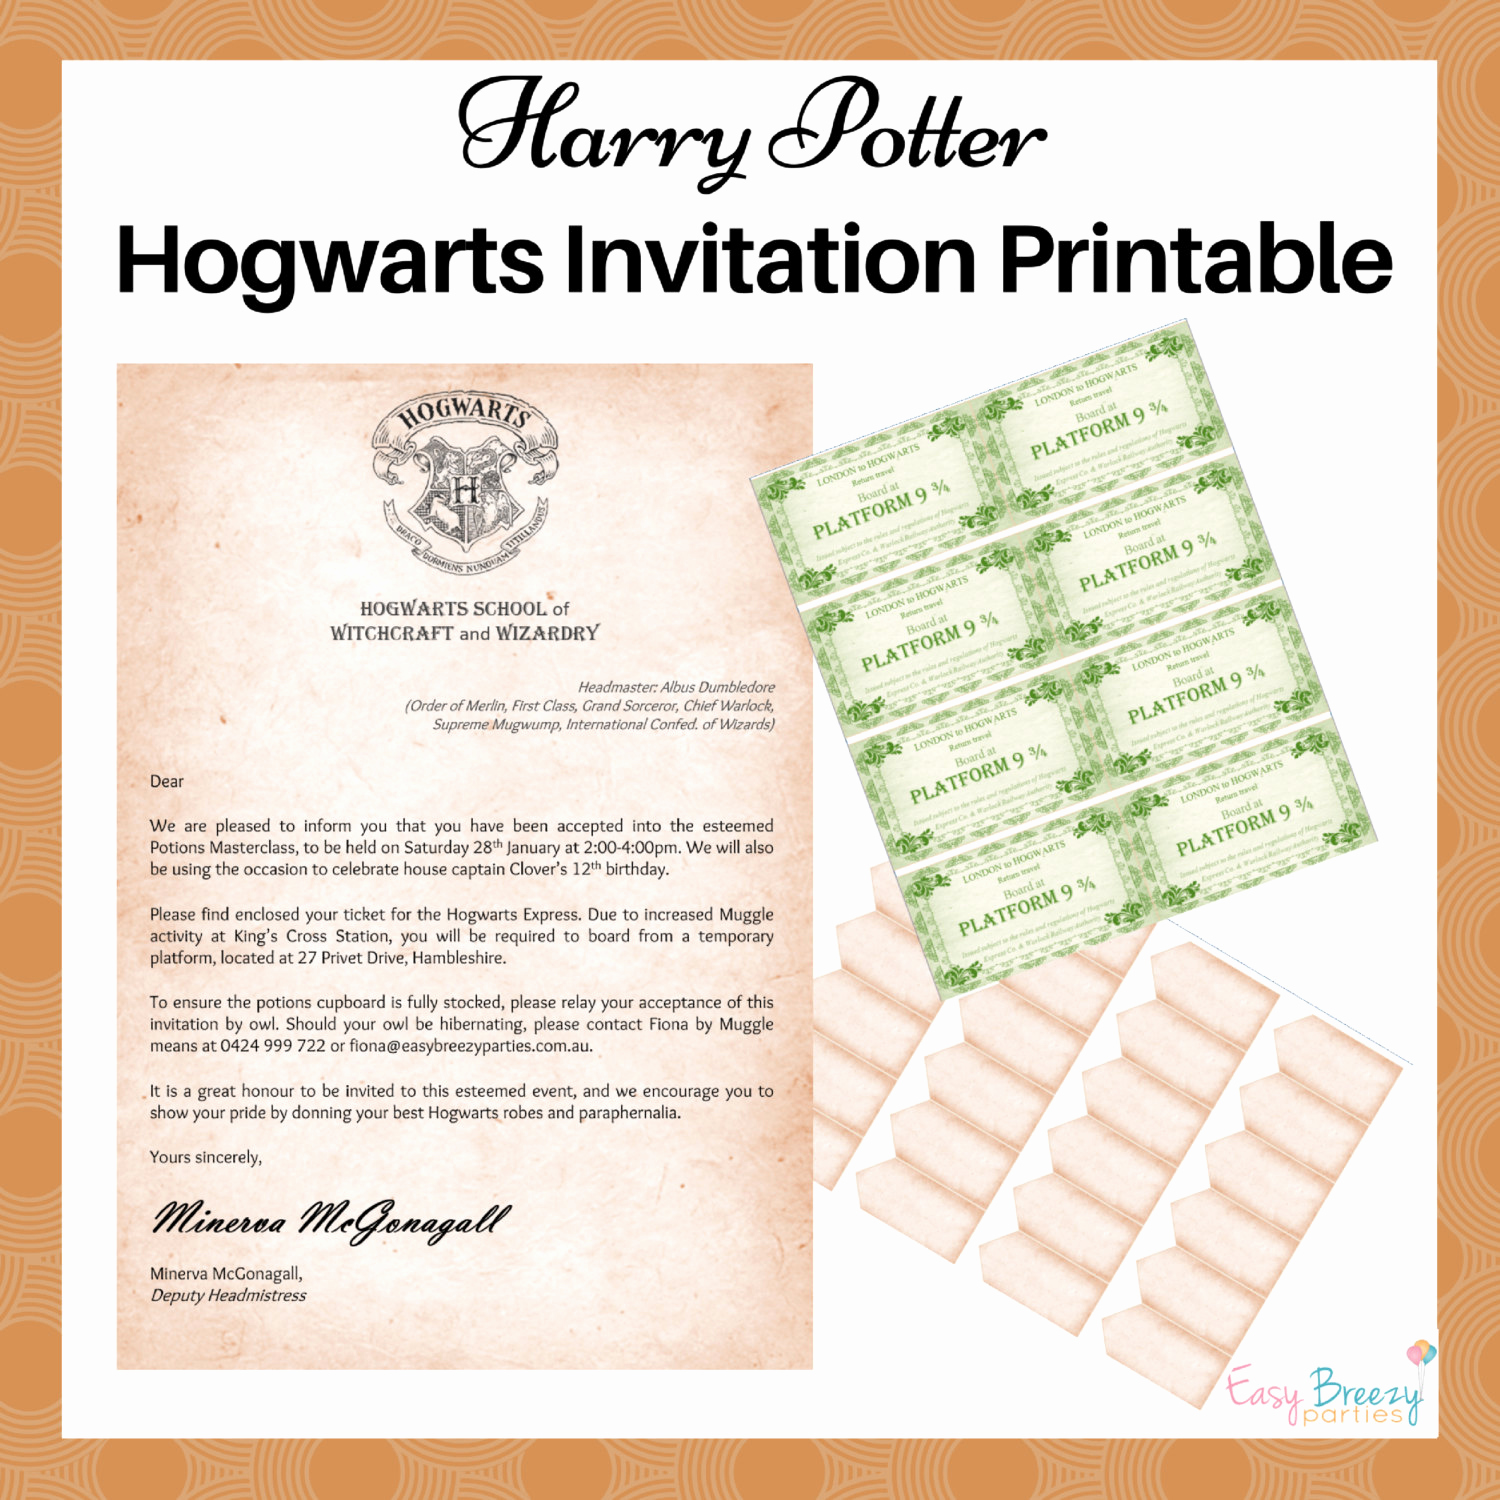 Hogwarts Birthday Invitation Template Beautiful Harry Potter Invitation Editable File Potions Masterclass